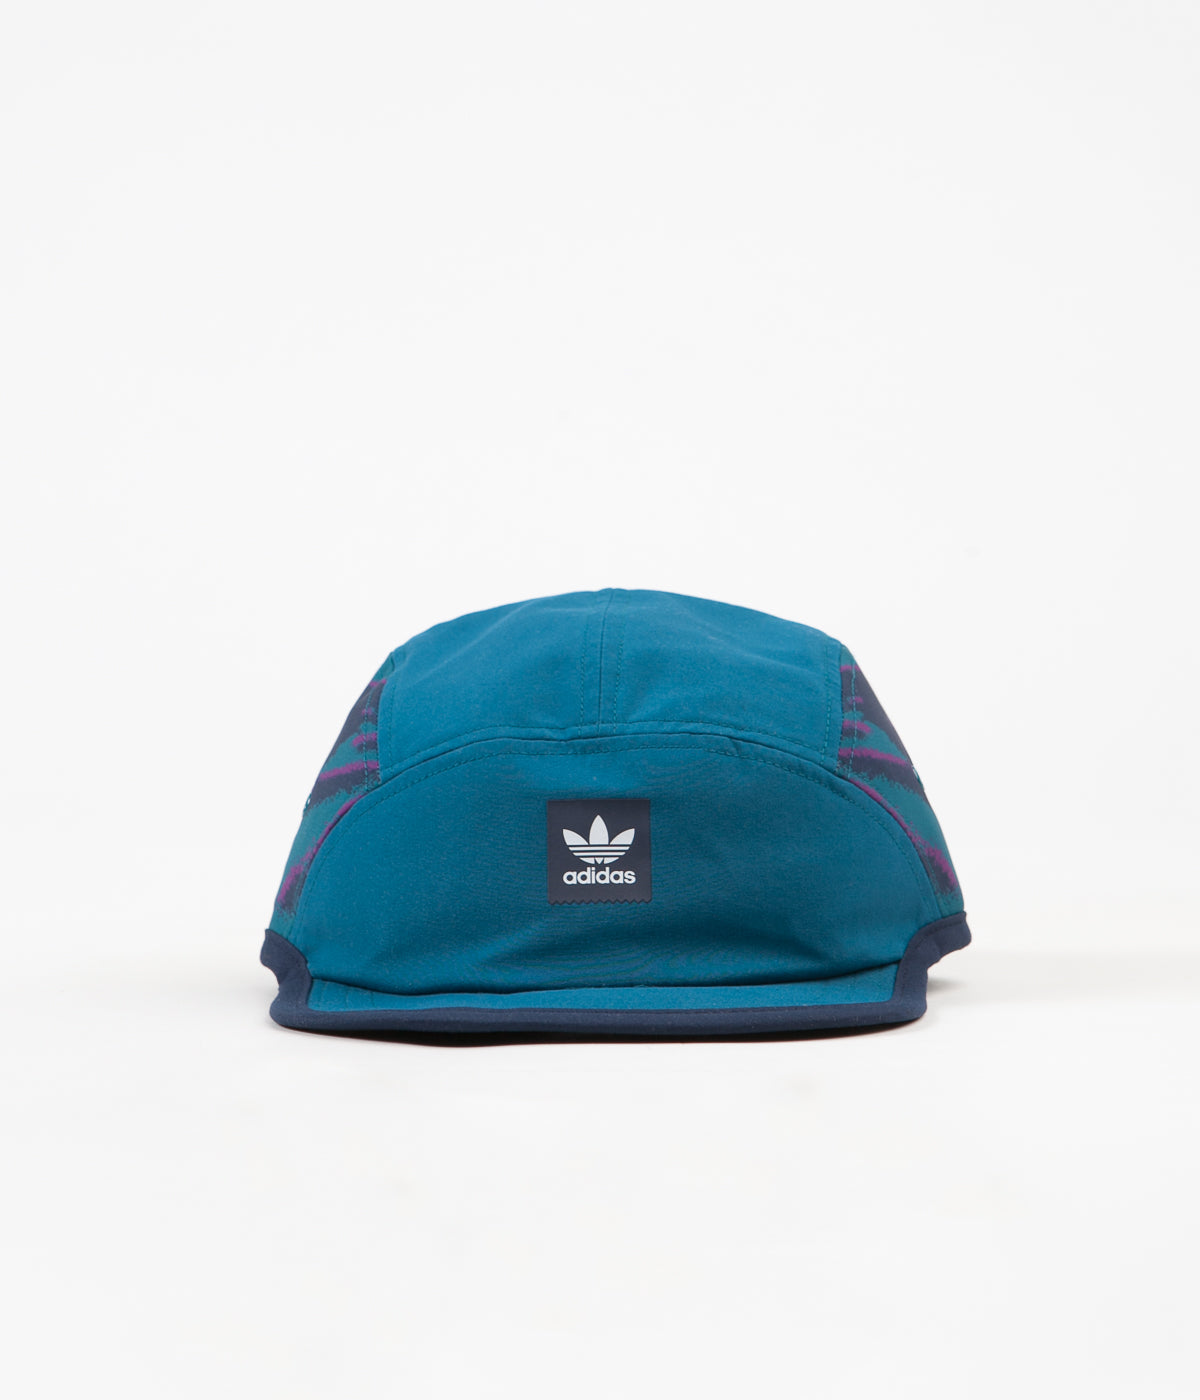 Adidas Court 5 Panel Cap - Real Teal